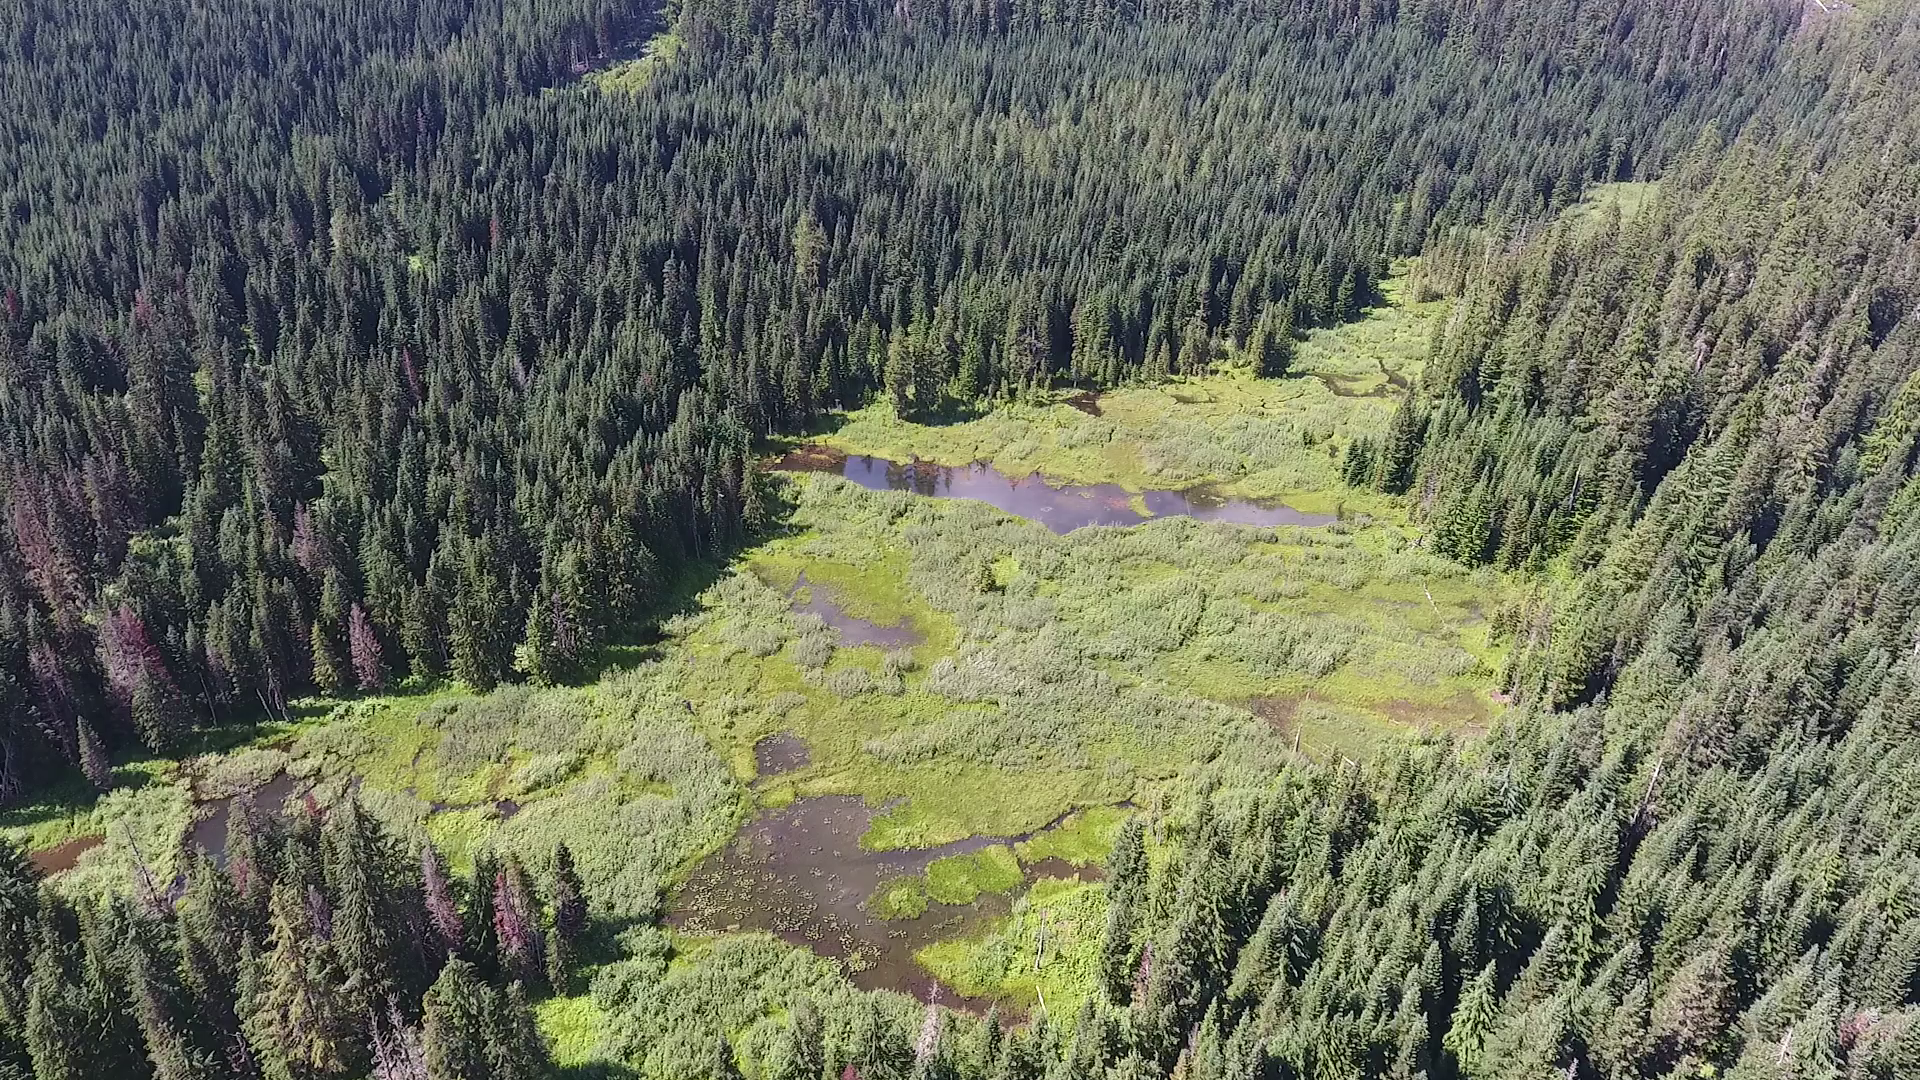 A wetland complex located in Gold Creek Valley.